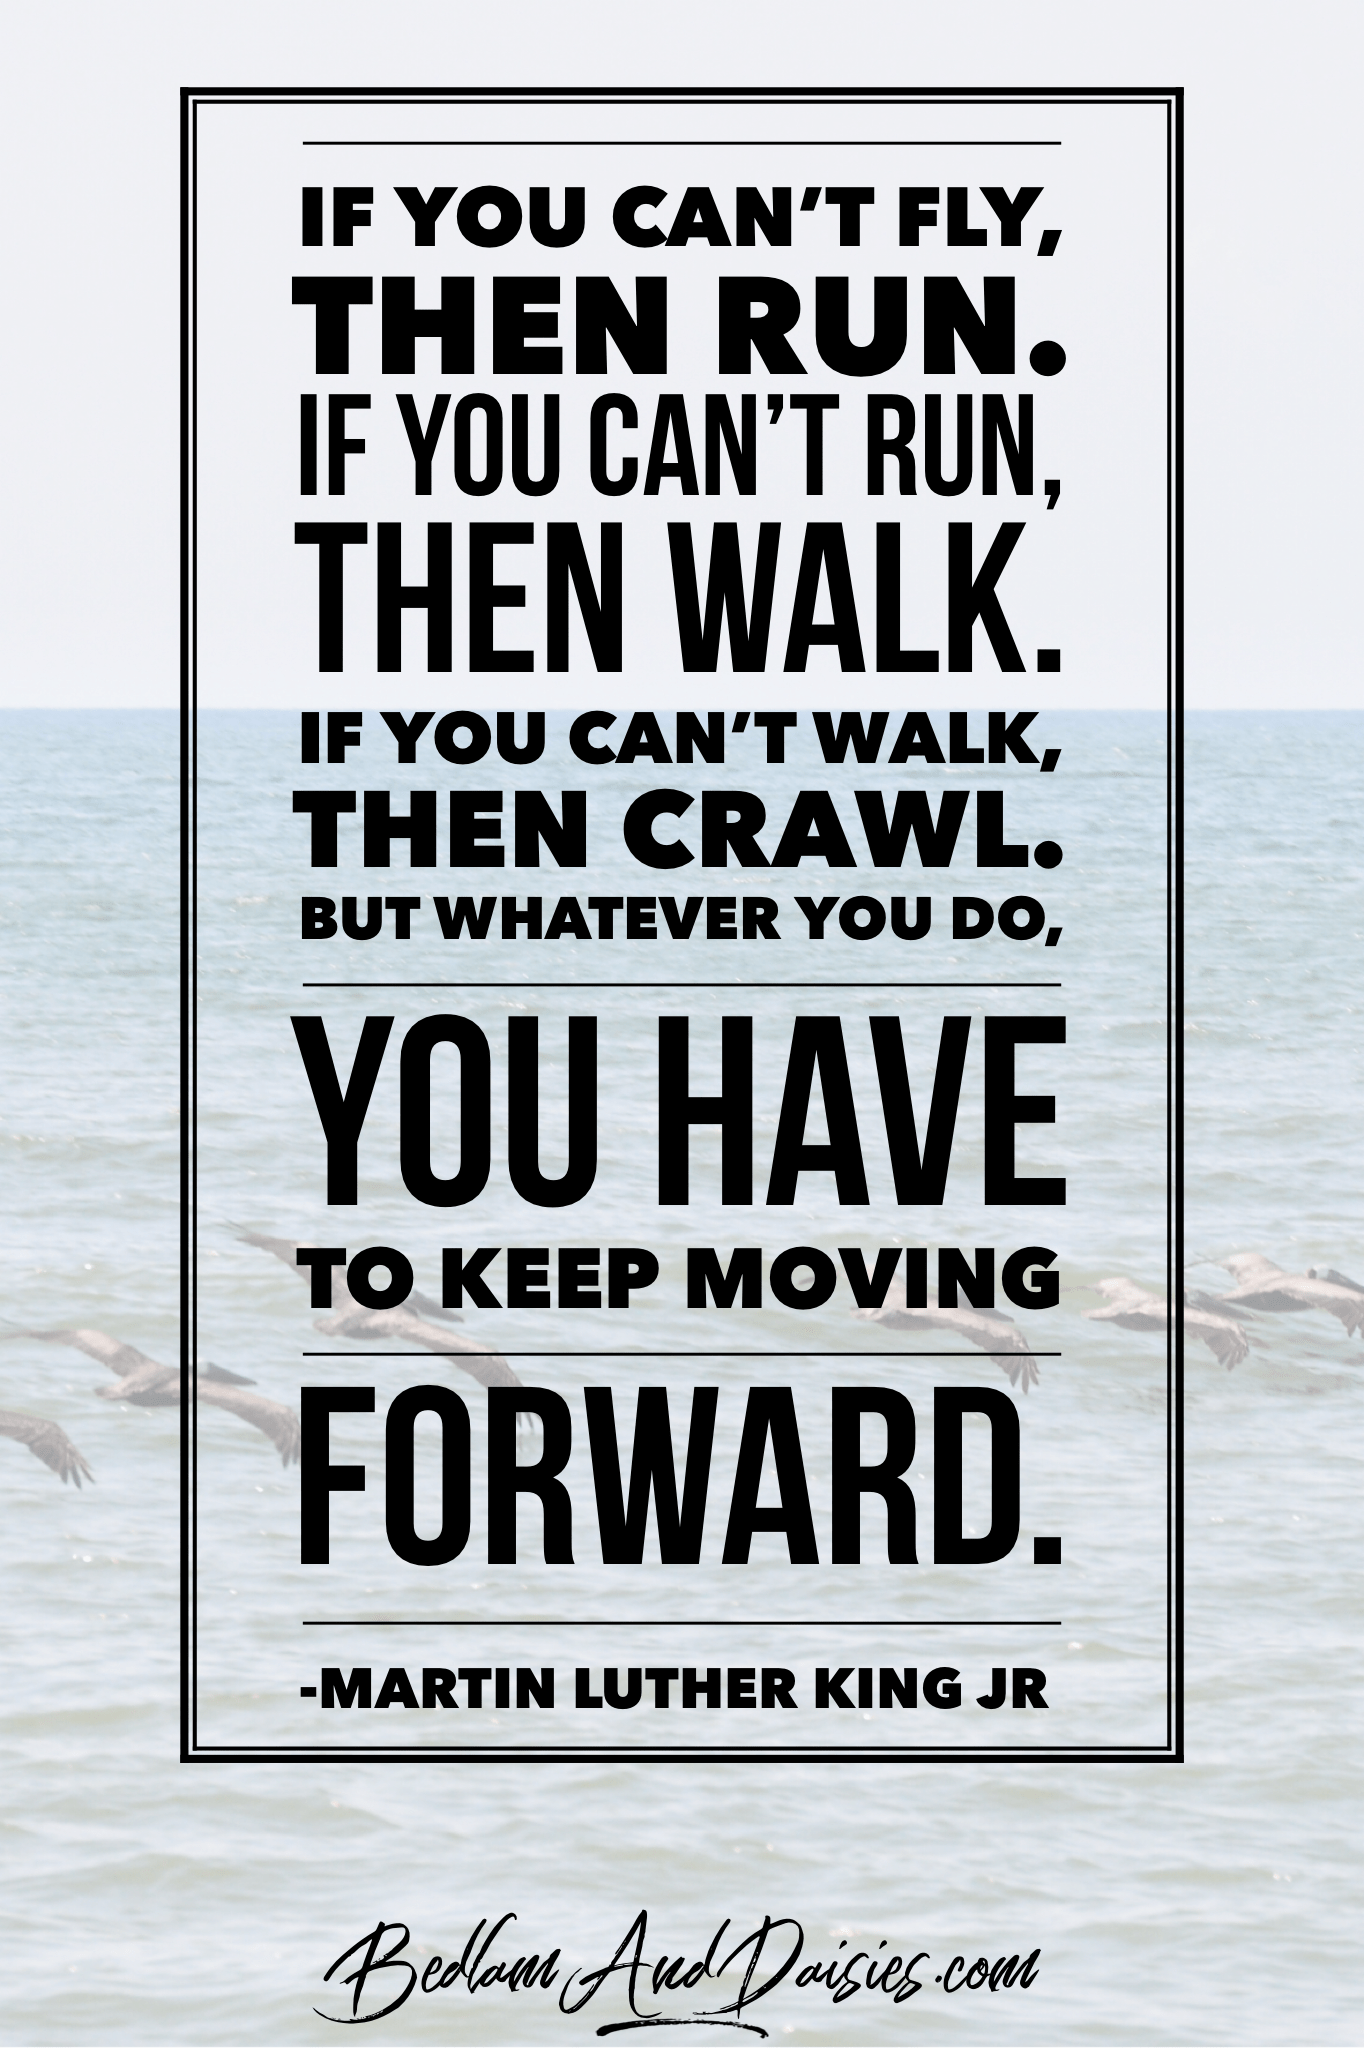 Martin Luther King Jr Quotes - Bedlam & Daisies  Martin luther